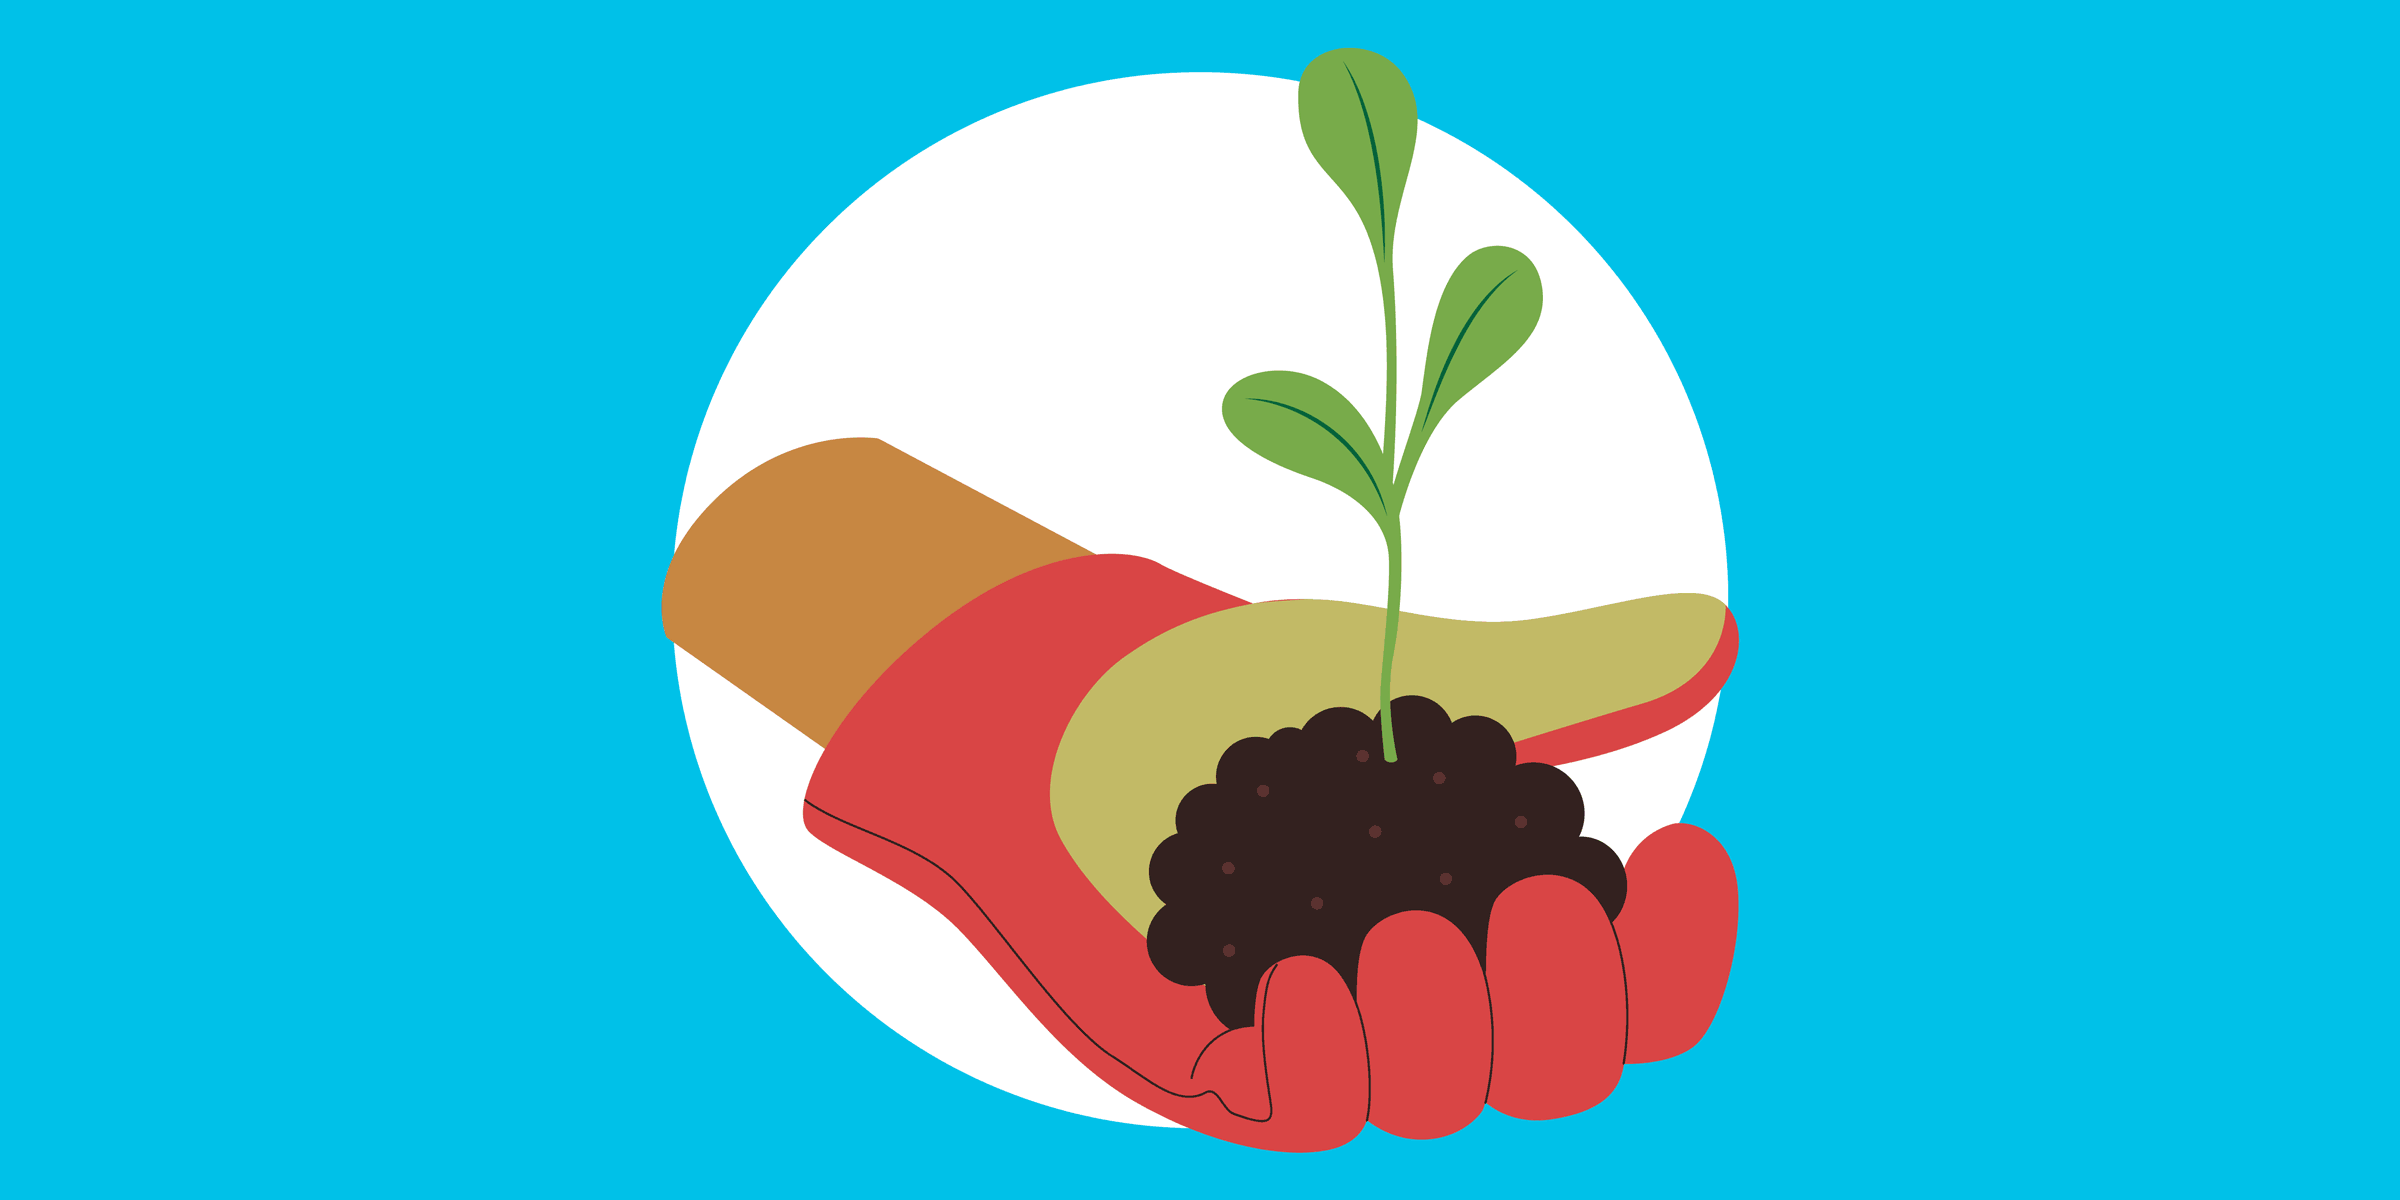 a person's hand in a gardening glove holding a seedling, symbolizing how a nonprofit utilizes quickbooks to empower youth through farming